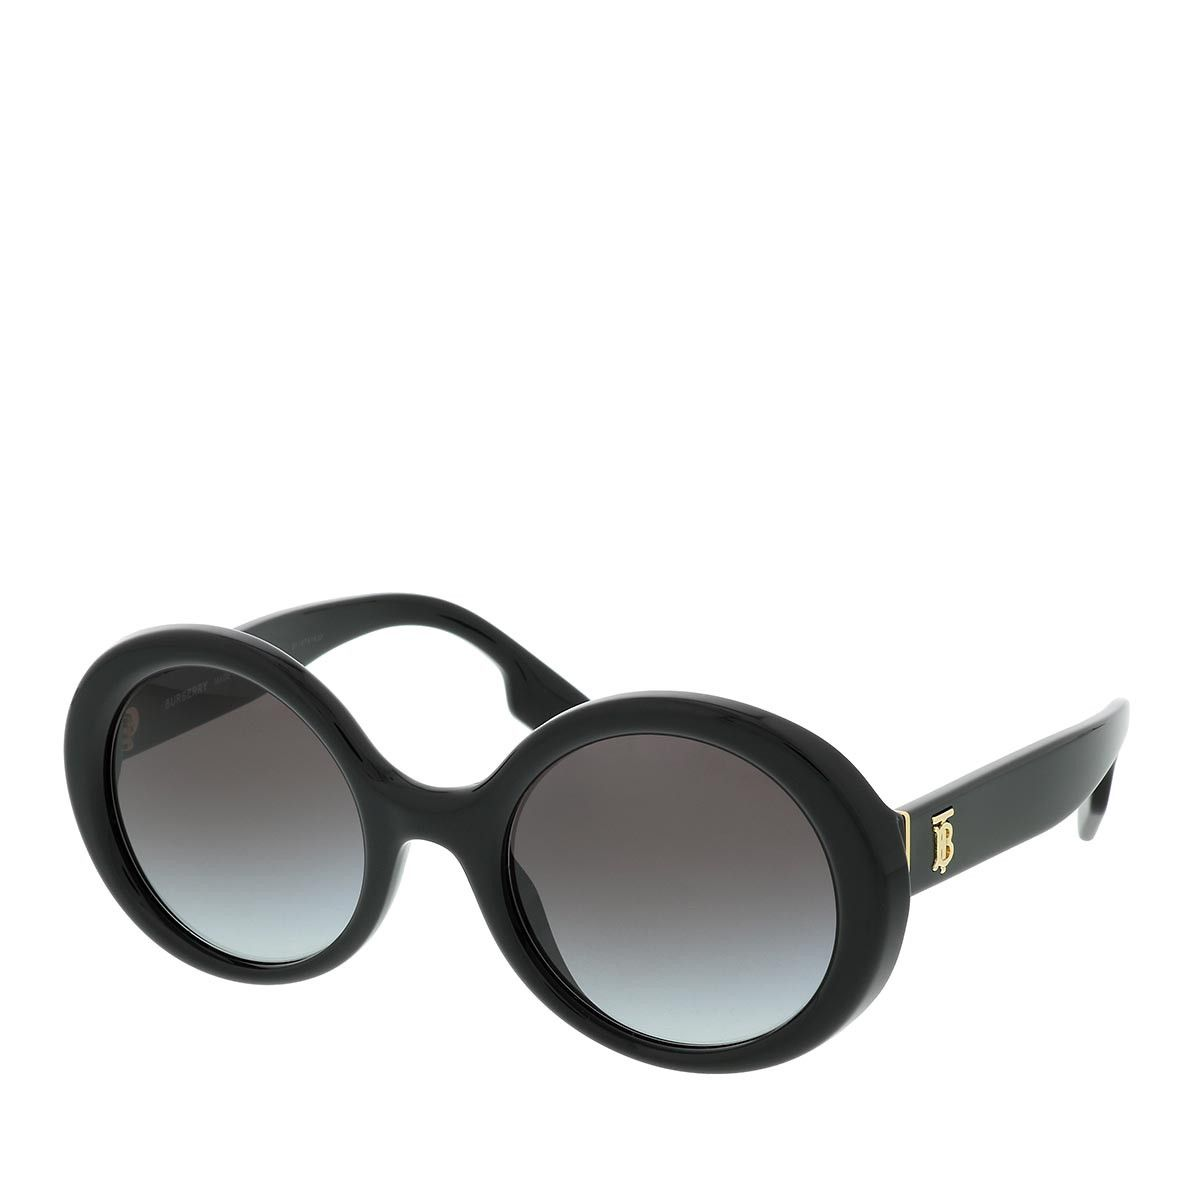 Burberry 0BE4314 30018G Woman Sunglasses Classic Reloaded Black Sonnenbrille